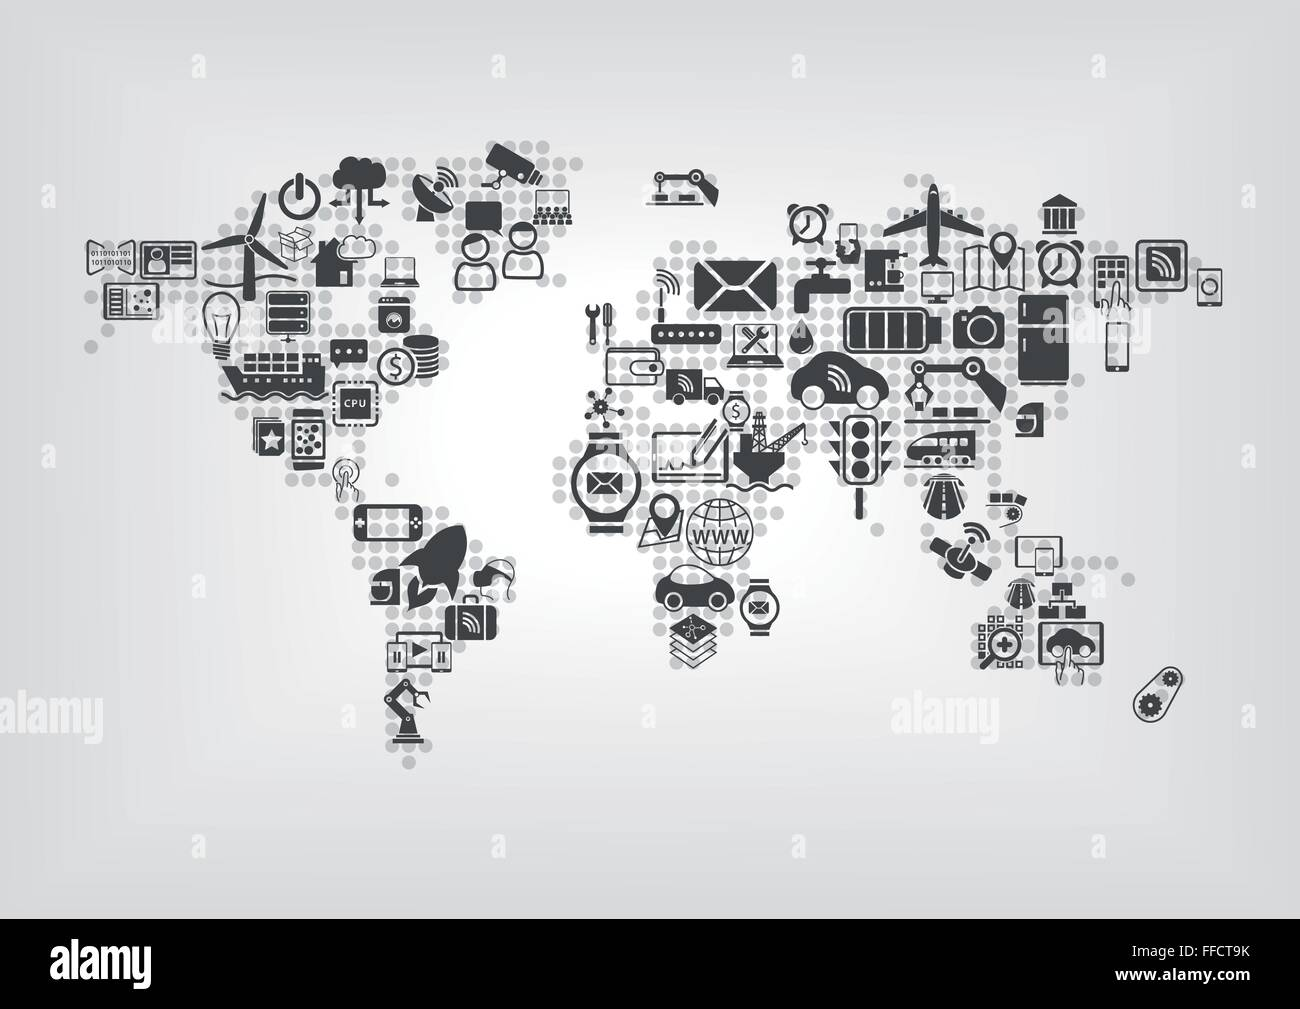 Internet of things iot and global connectivity concept world internet of things iot and global connectivity concept world map of connected smart devices using flat design gumiabroncs Choice Image